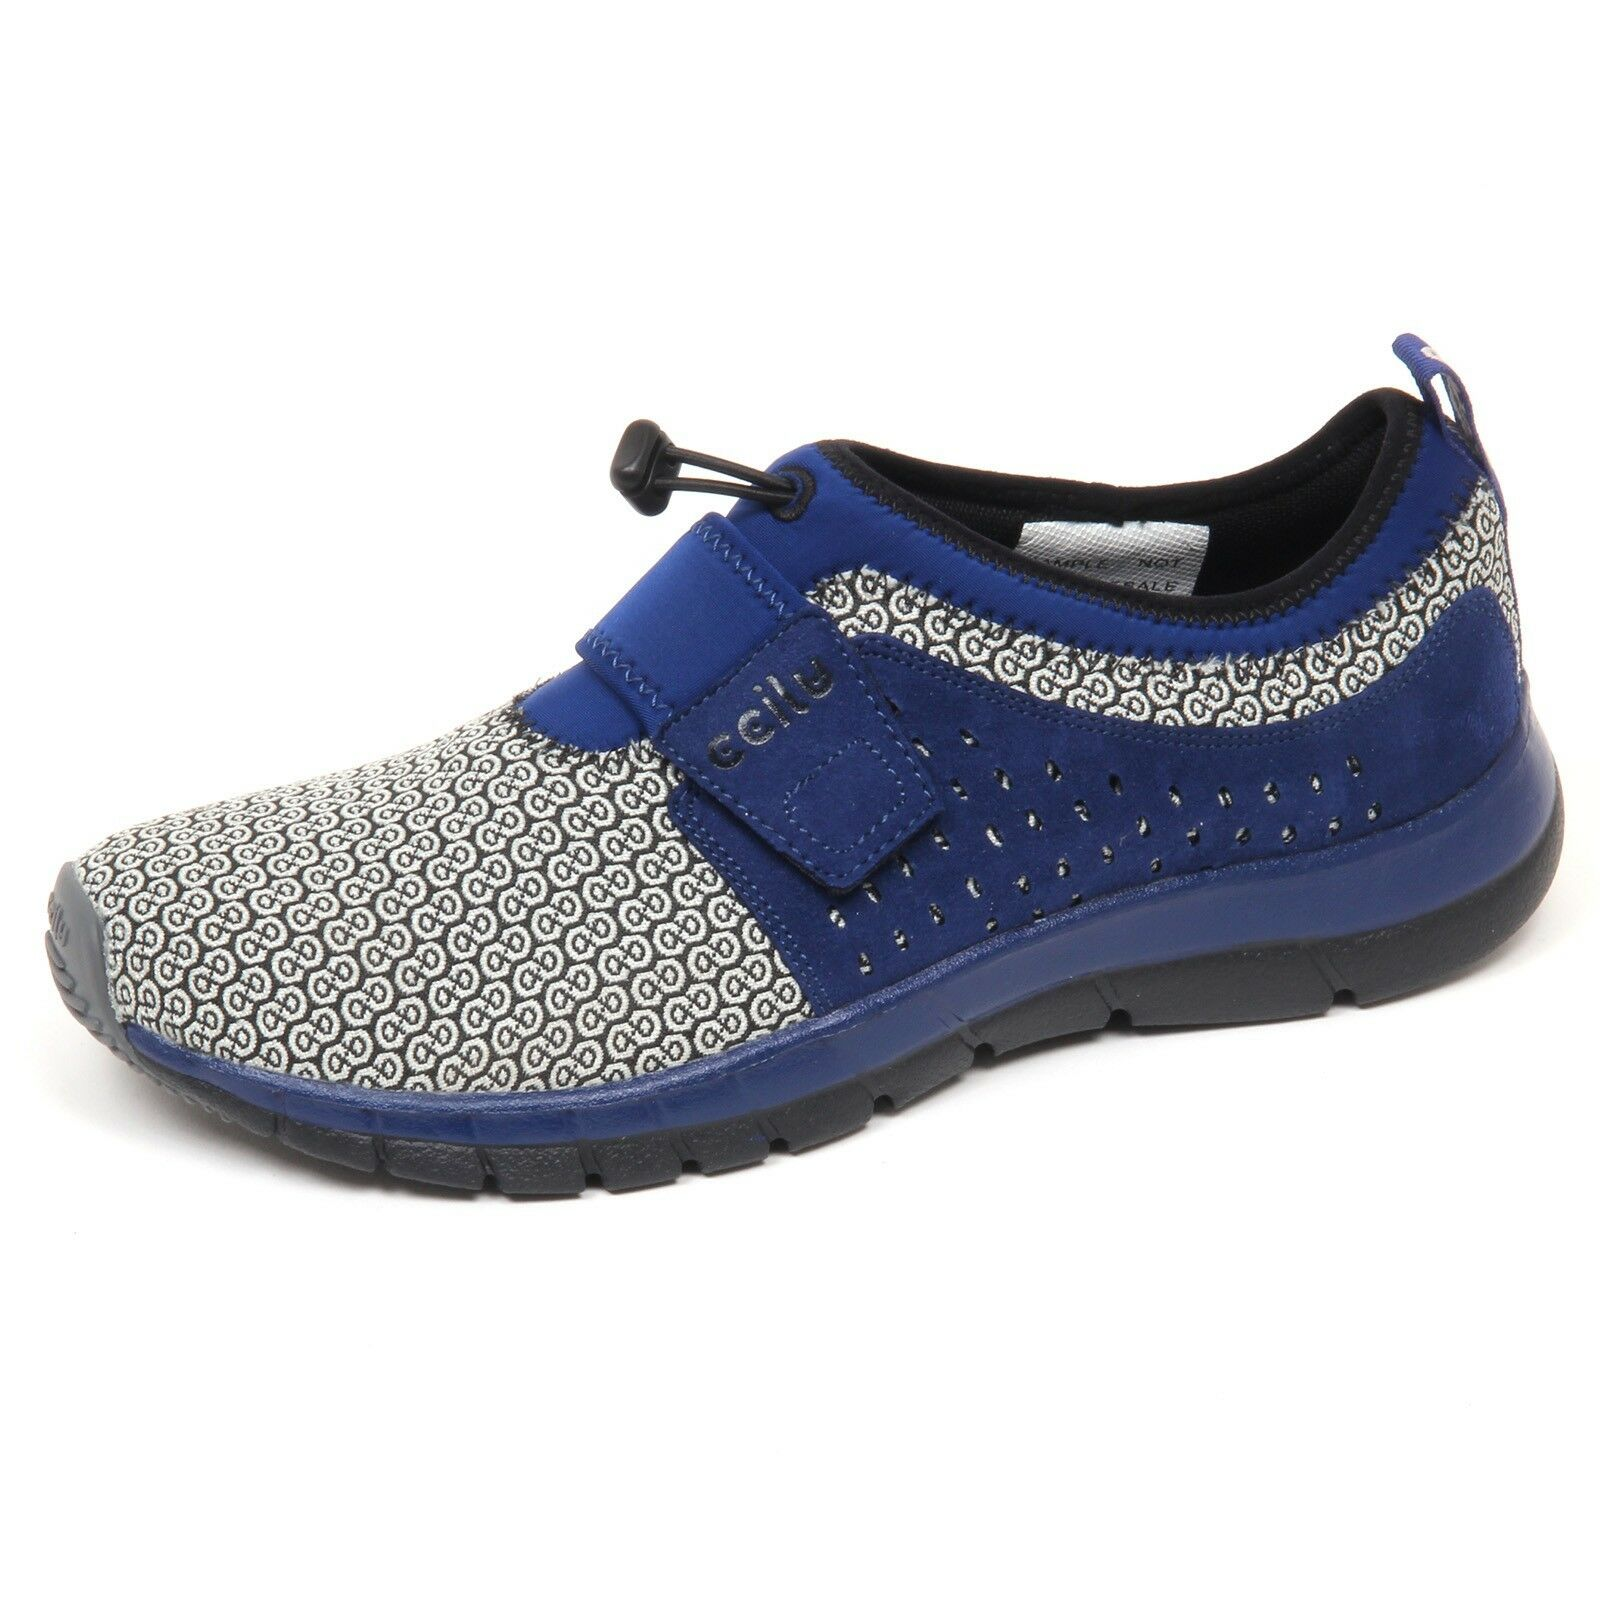 E7964 (SAMPLE NOT FOR SALE WITHOUT BOX) sneaker uomo blu blu blu CCILU slip on shoe man bf5e66